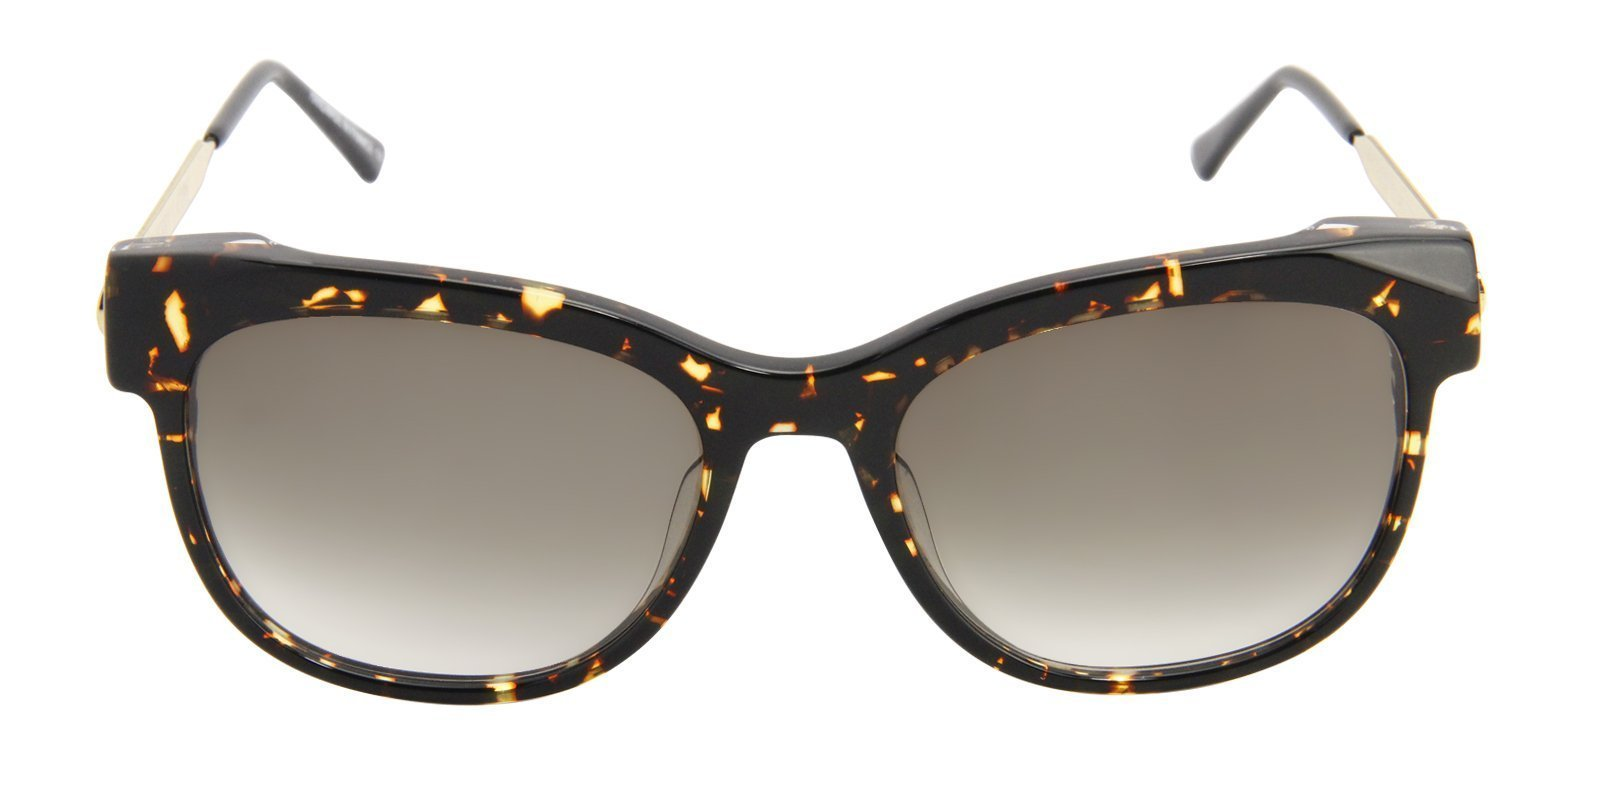 Thierry Lasry - Lippy Tortoise Oval Women Sunglasses - 56mm-Sunglasses-Designer Eyes